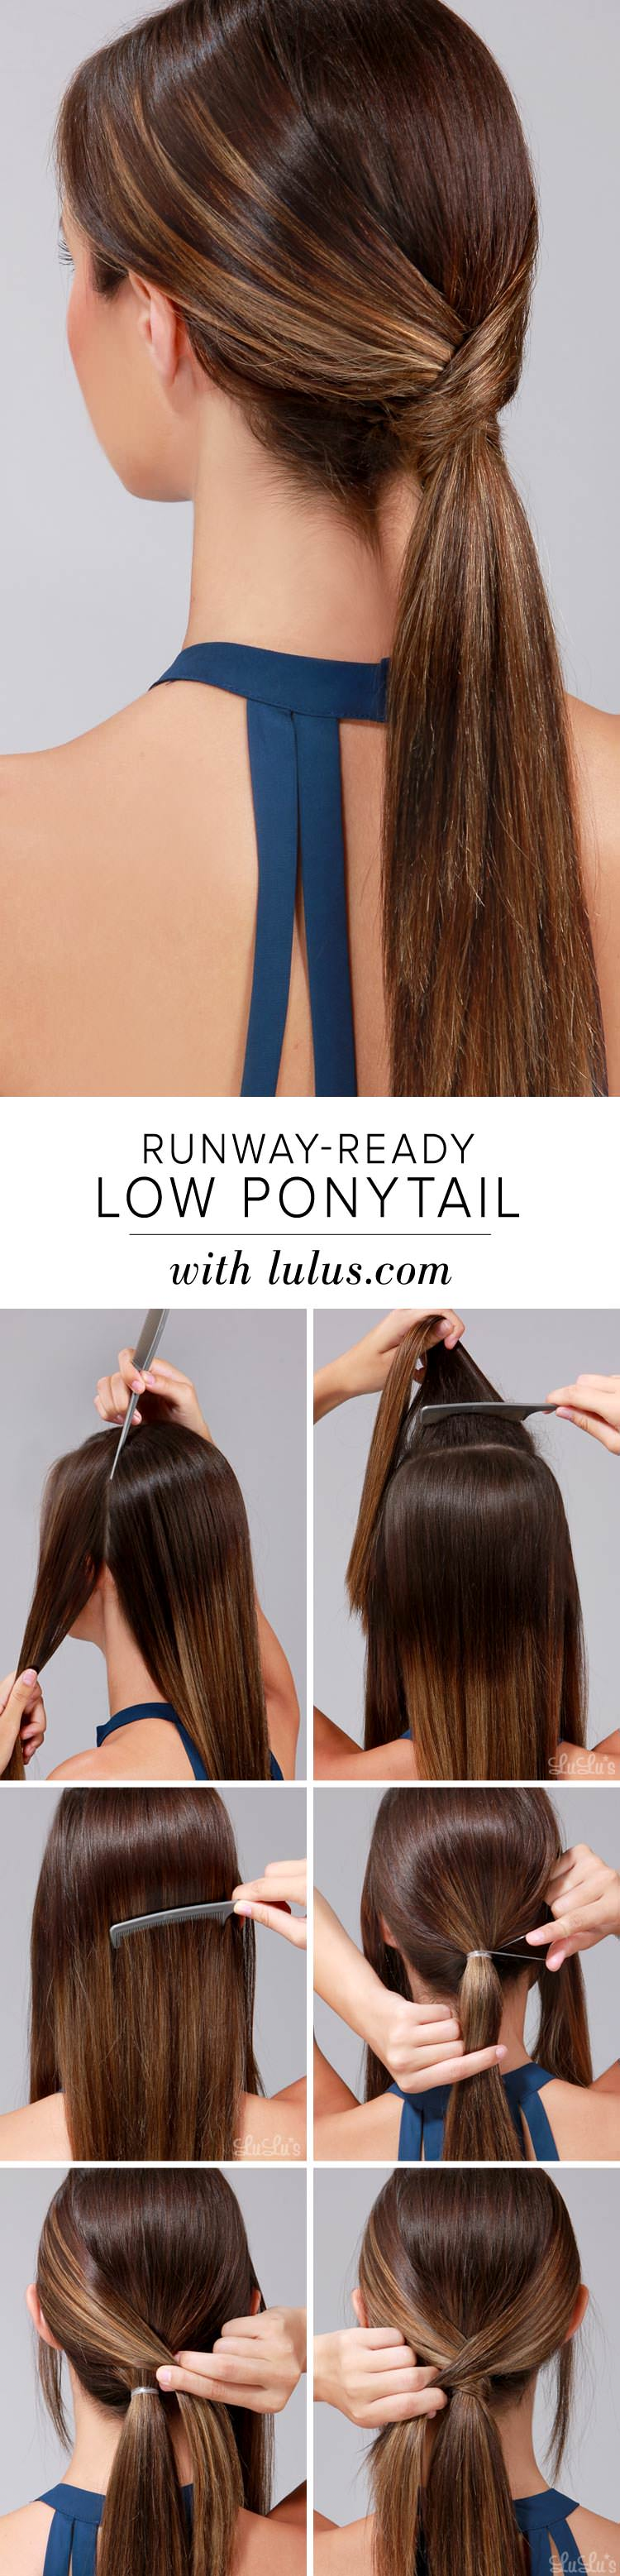 Runway-Ready-Low-Ponytail